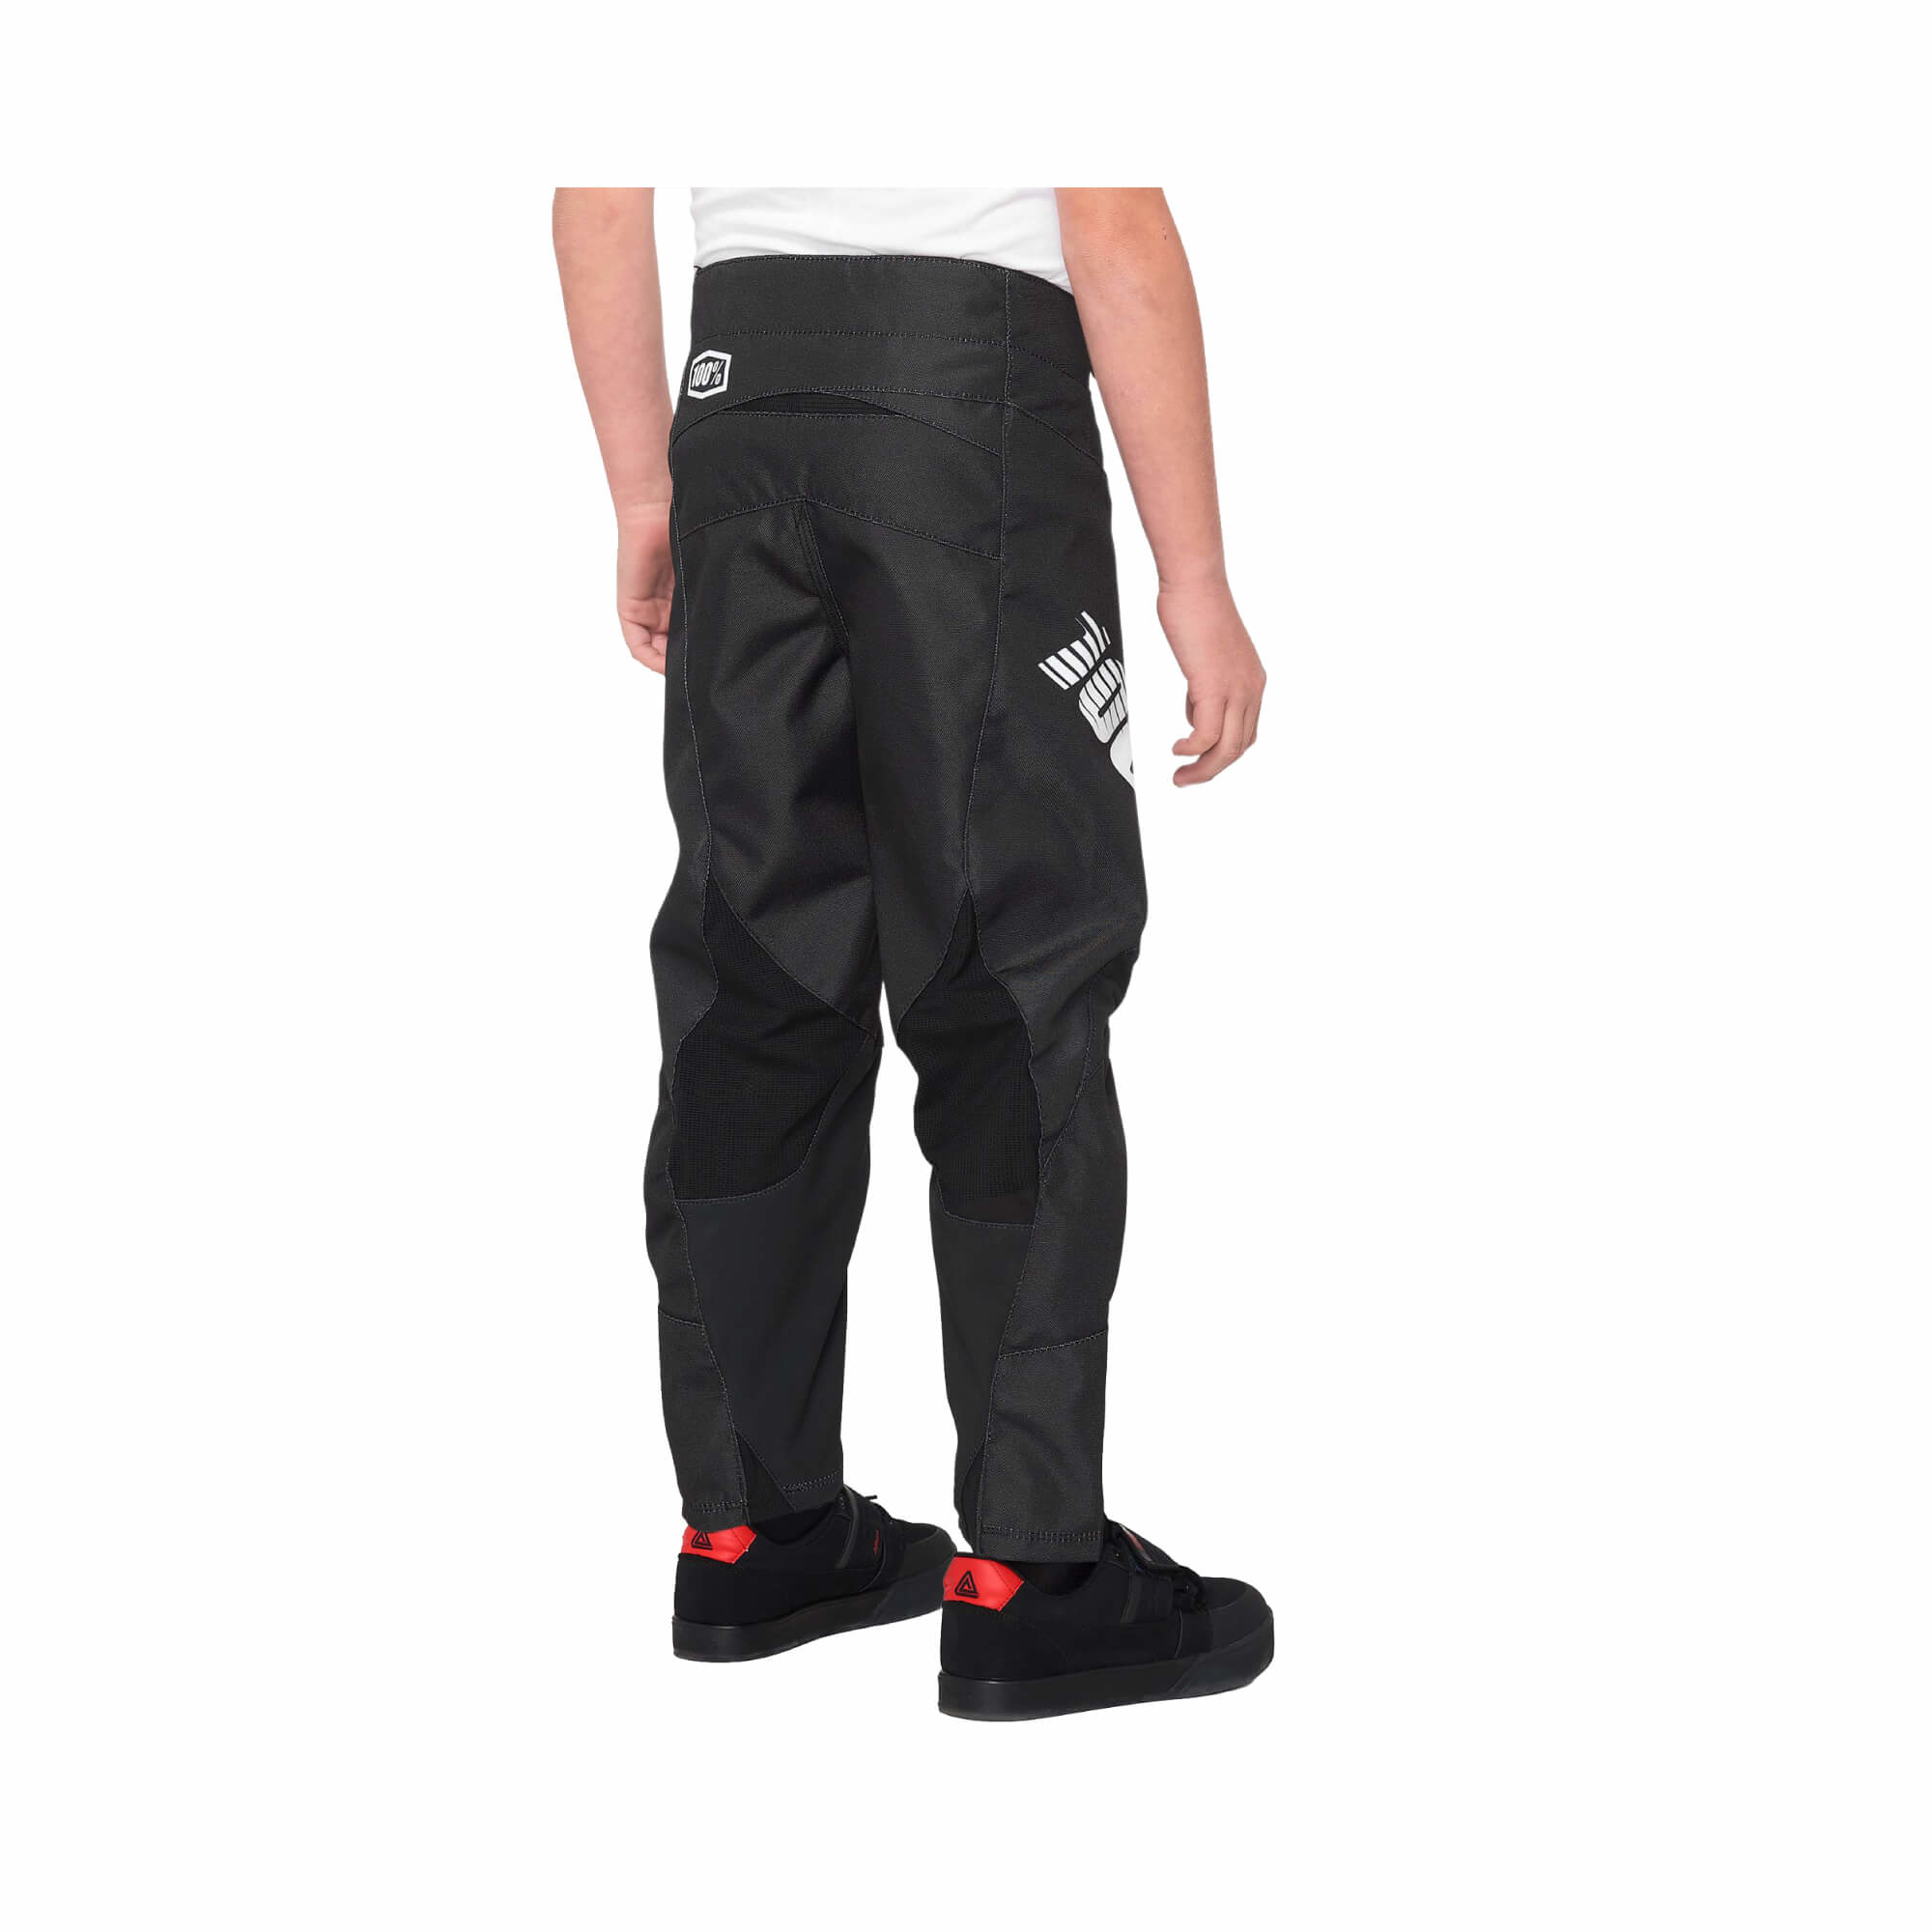 R-Core Youth Pants 2021-2